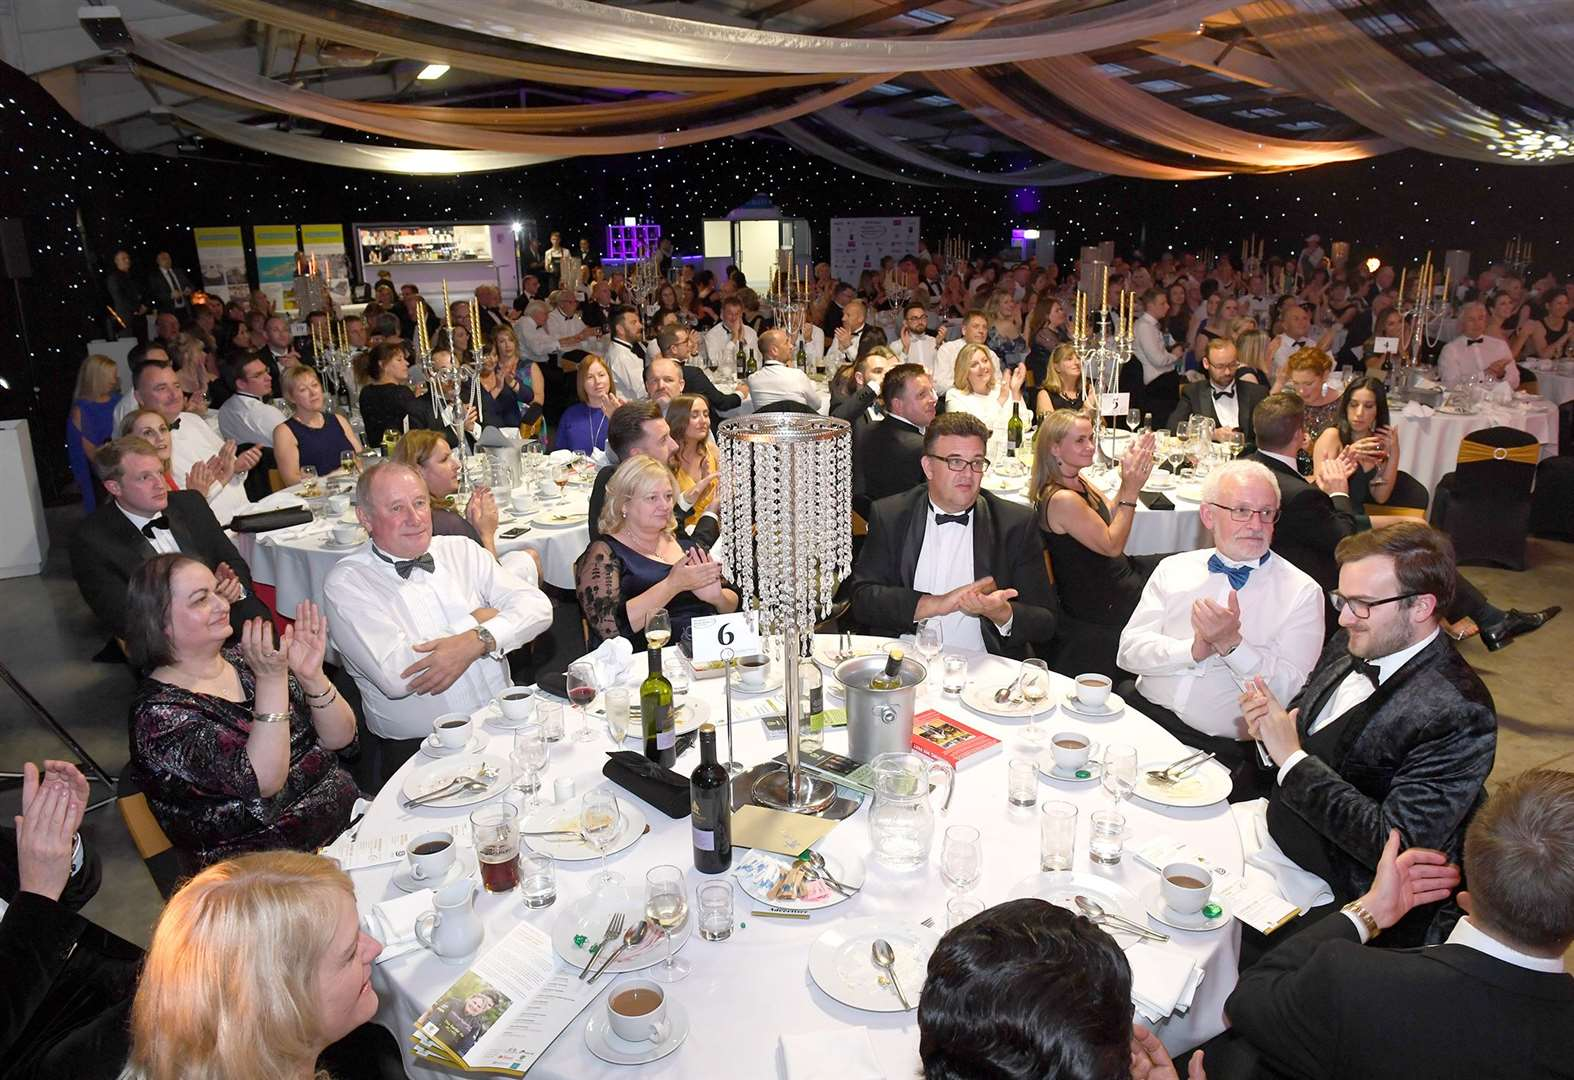 More photos from the Newark Business Awards.